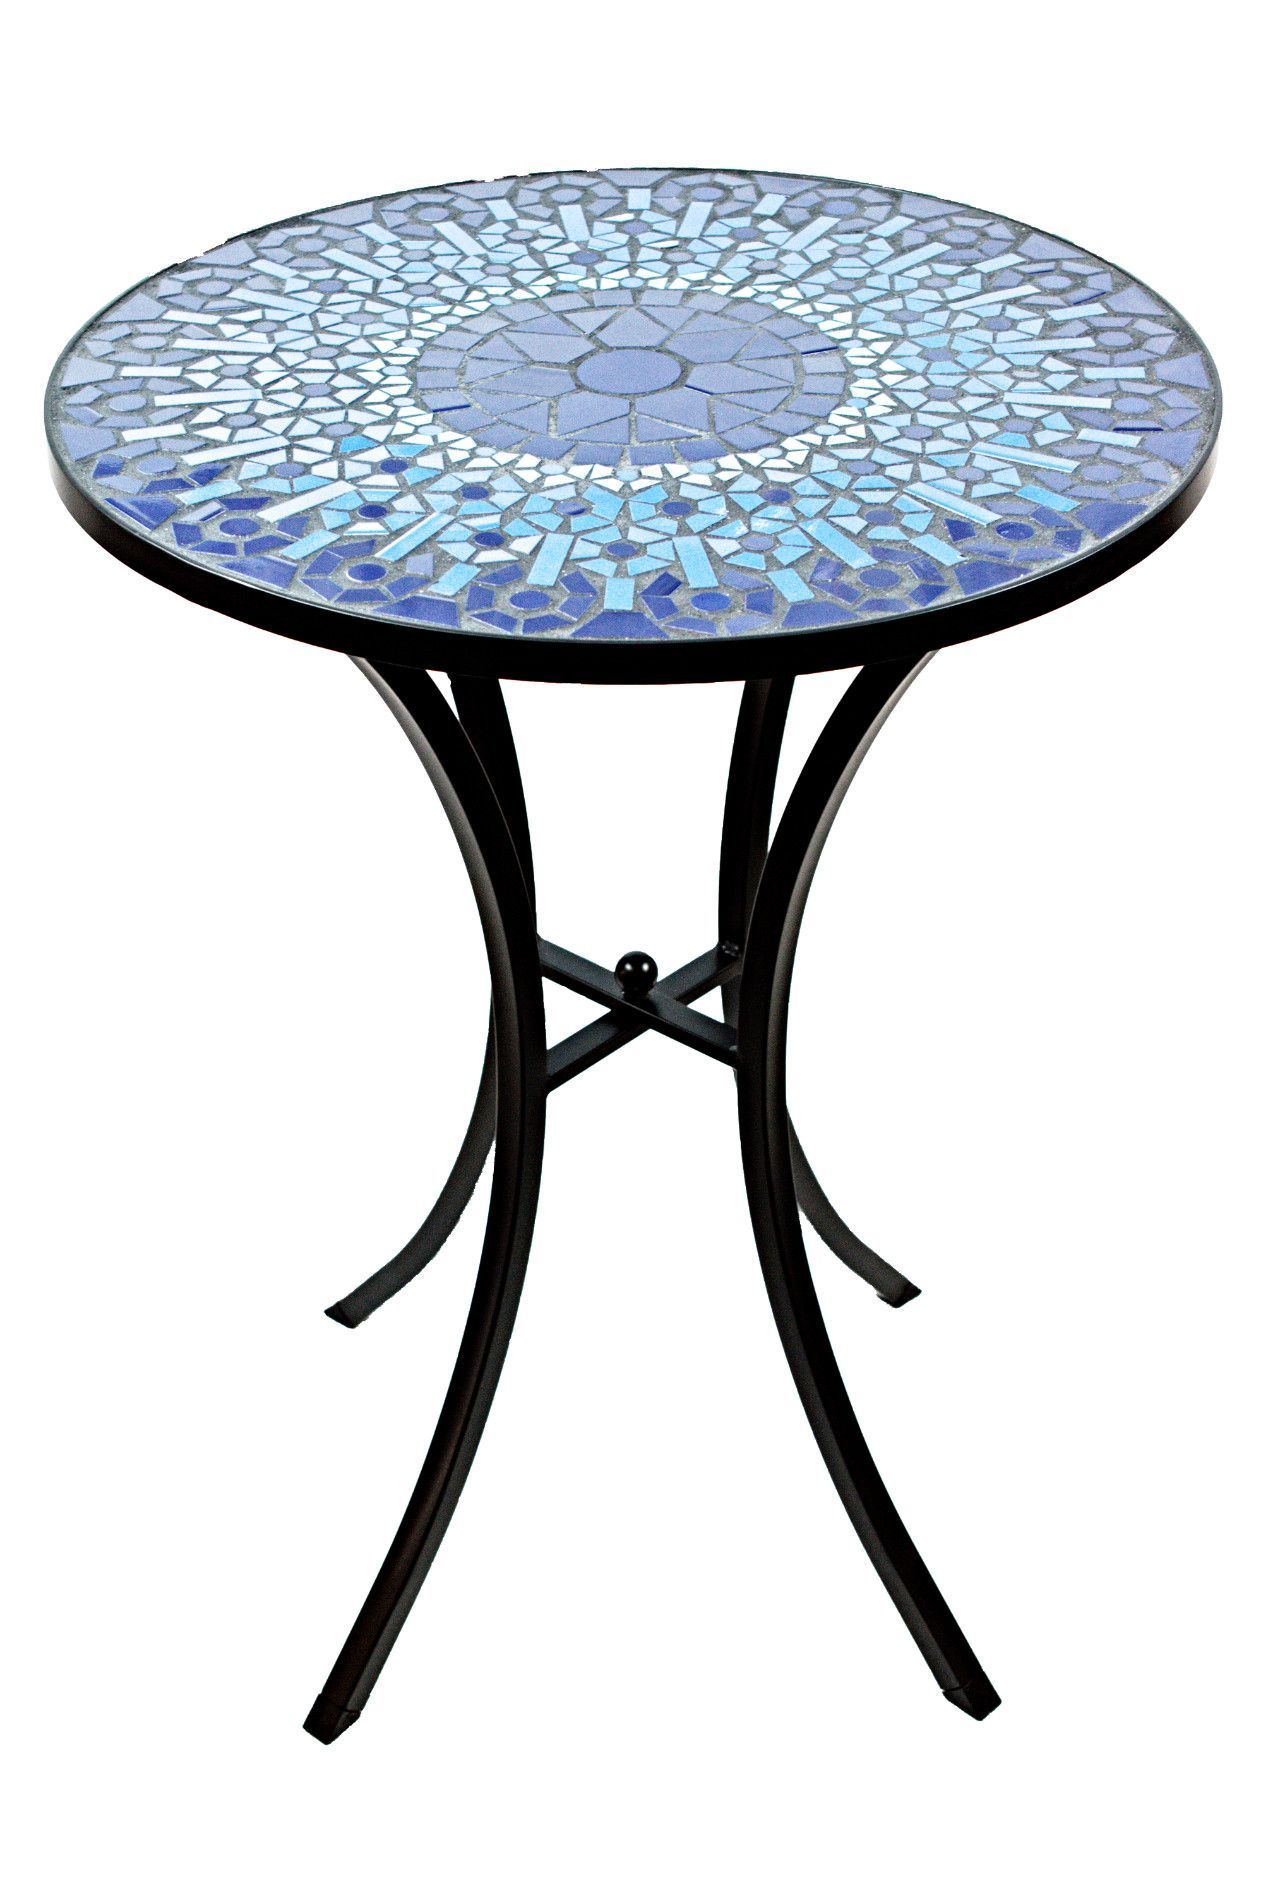 outdoor patio dining table italian mosaic stone marble black accent tile patterns decor and mosaics side with storage baskets top coffee toronto garden nautical ornaments purple